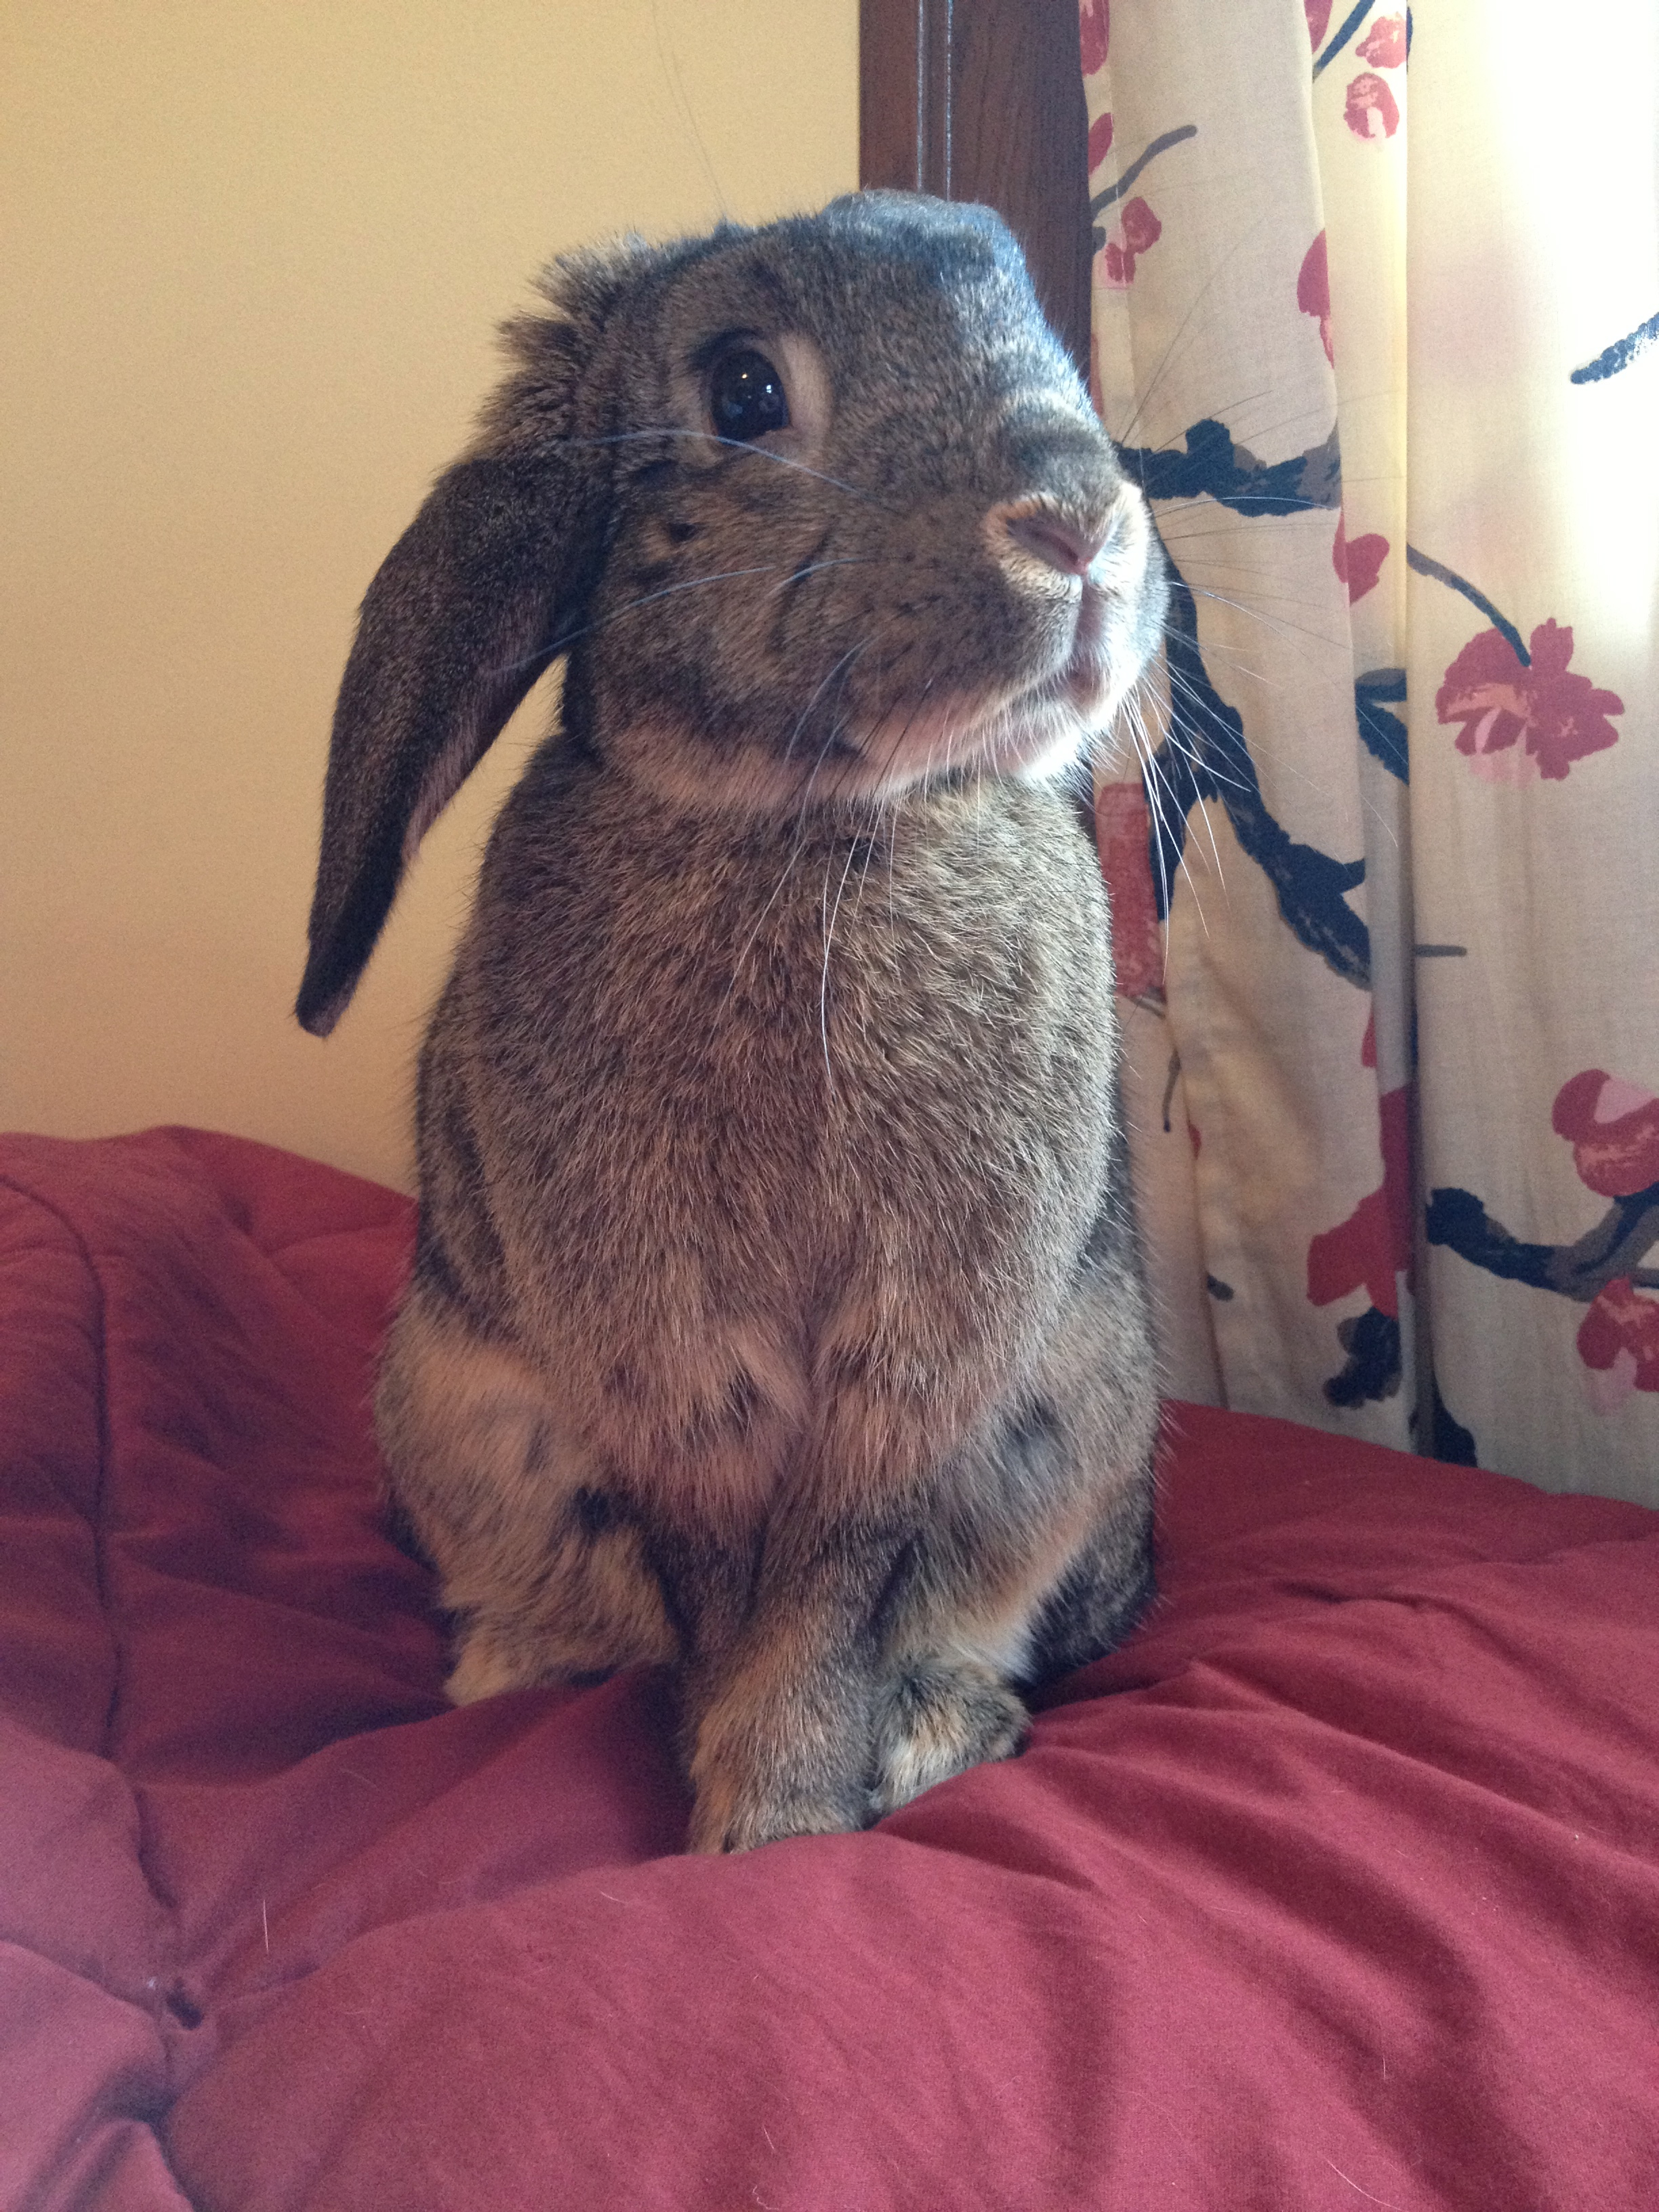 Bunny Is On Her Best Behavior - Will You Reward Her with Some Carrot?